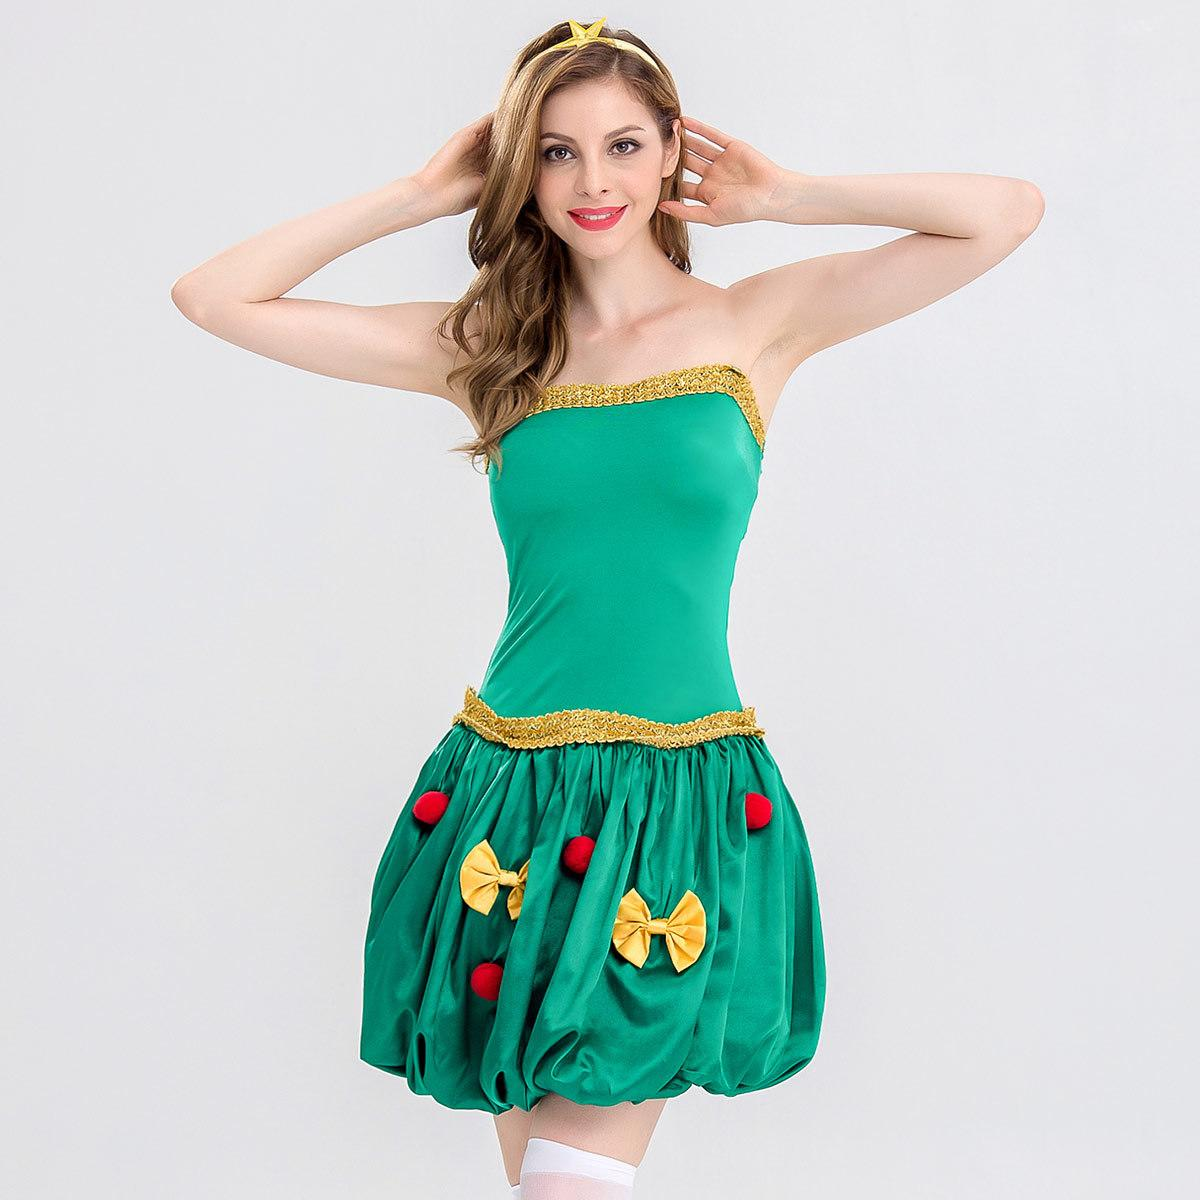 2018 NightClub Bar Party Seduction of Uniform Sexy Green Bow Christmas Santa Claus Cospaly Costume DS Stage Dress Disco Holiday Coat 8320